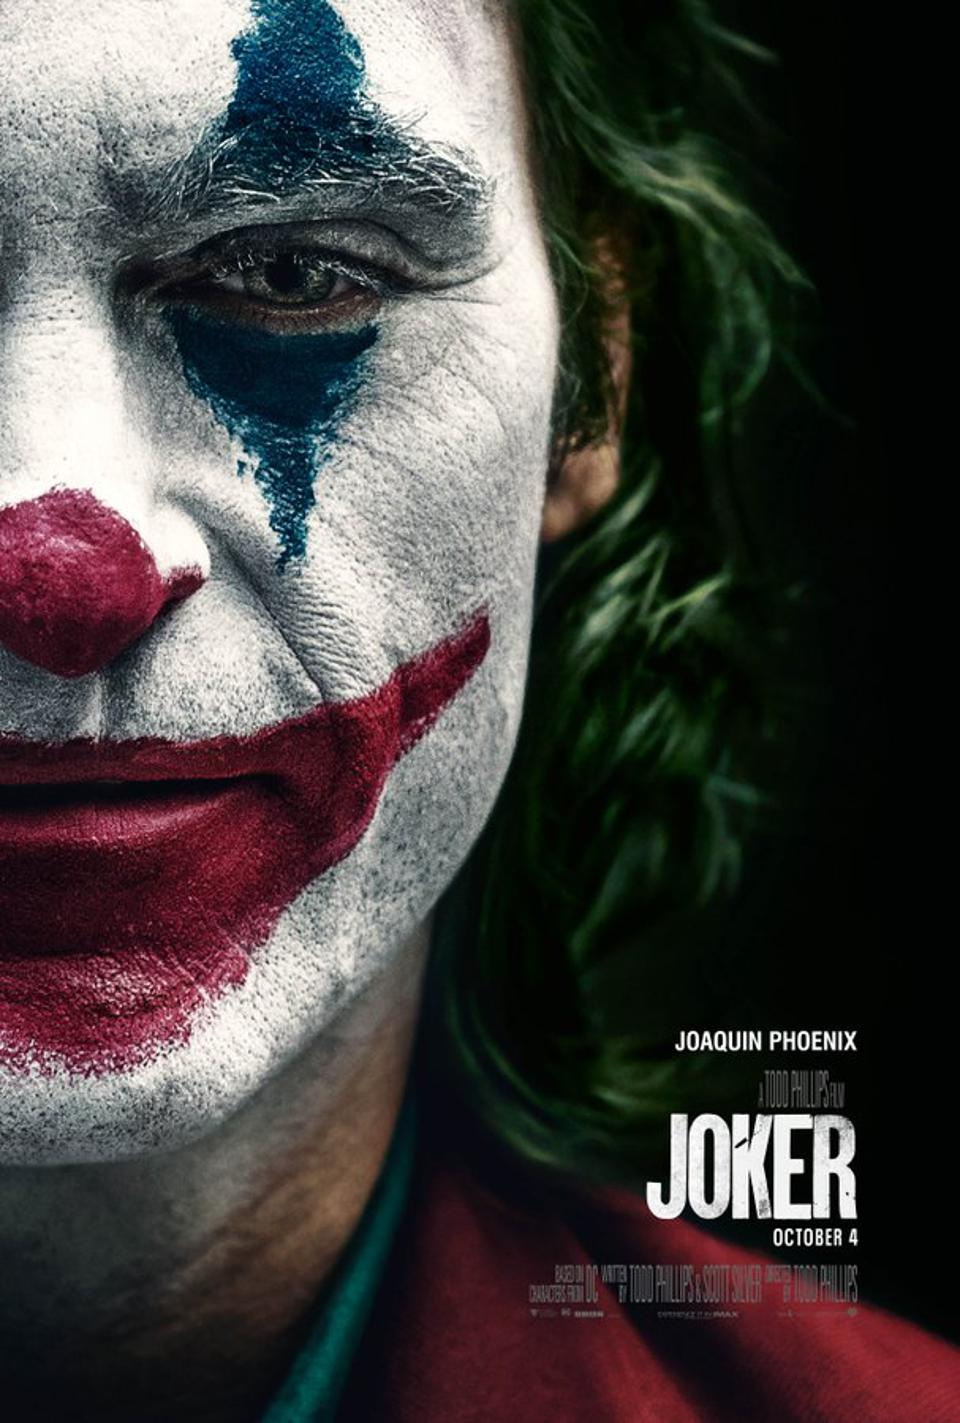 Official poster for Warner's ″The Joker″